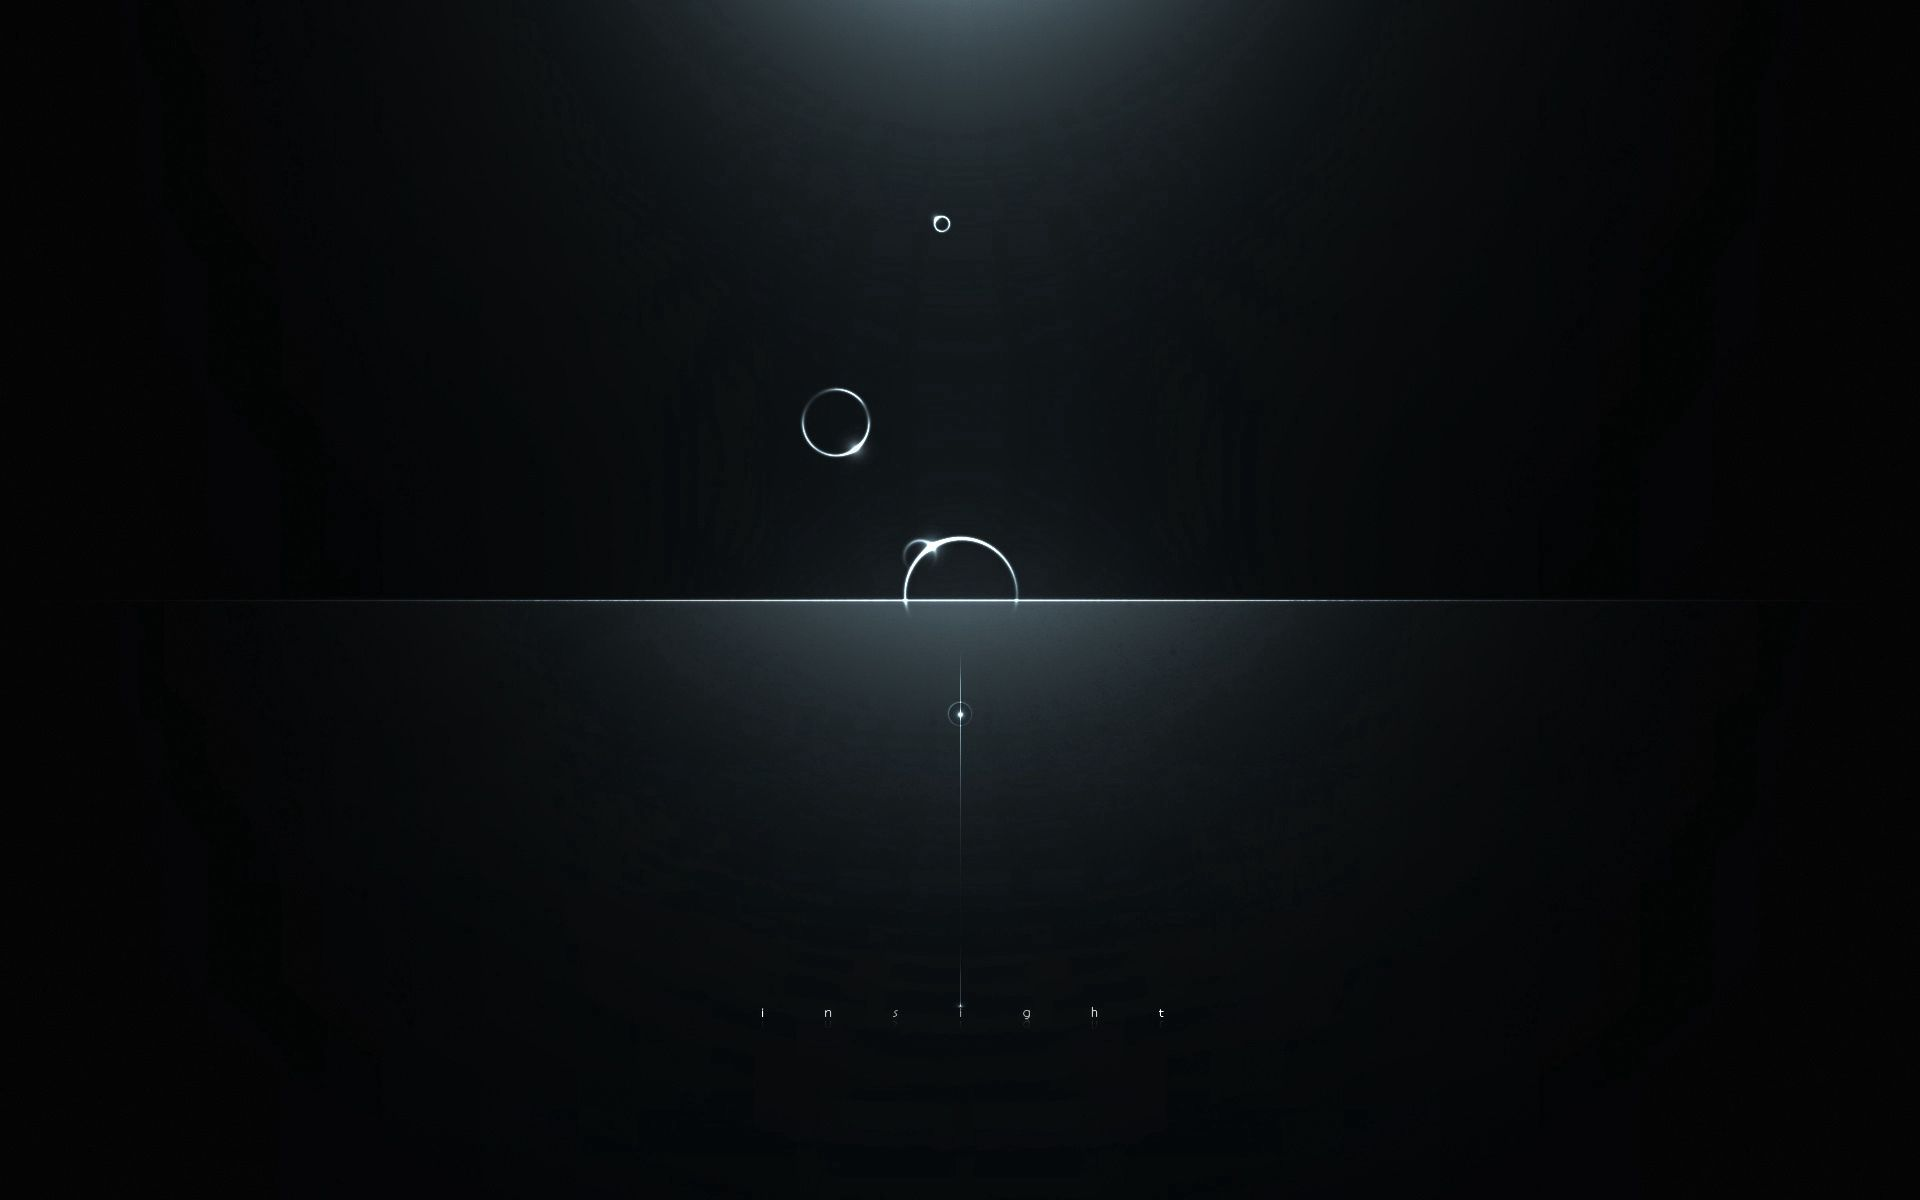 132036 download wallpaper Dark, Minimalism, Circles, Glare, Shine, Light, Intuition screensavers and pictures for free